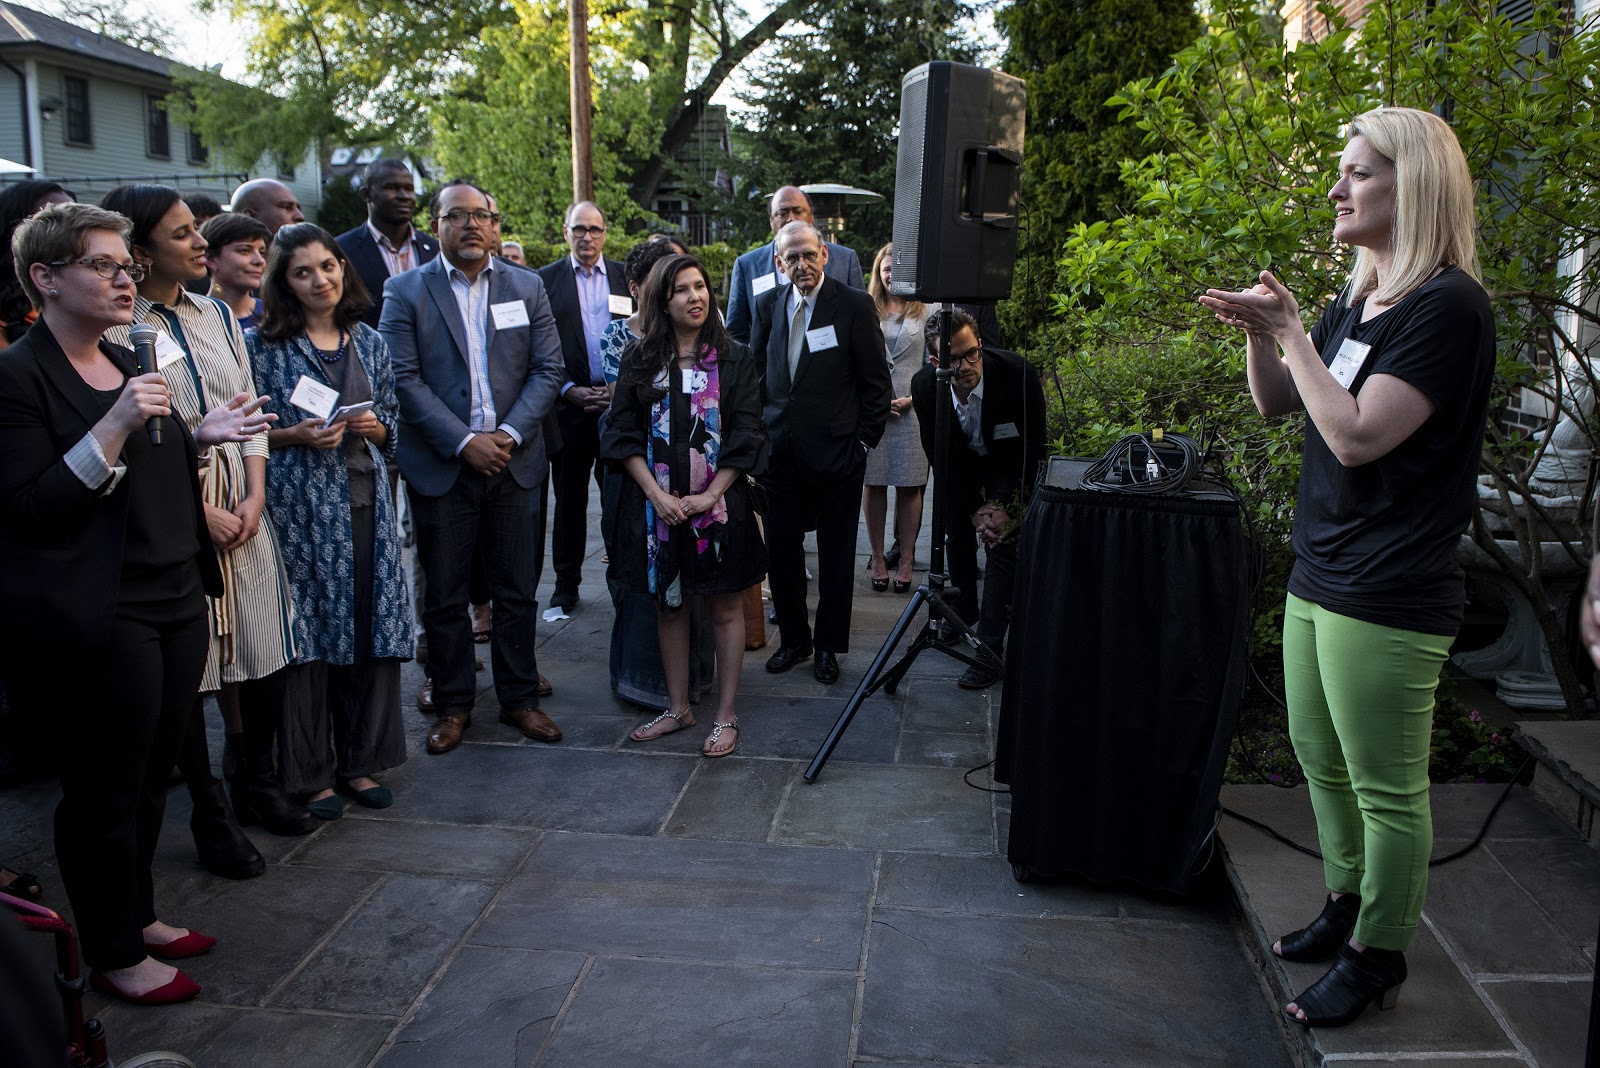 Melissa speaking at a reception of 2018 Obama Fellows